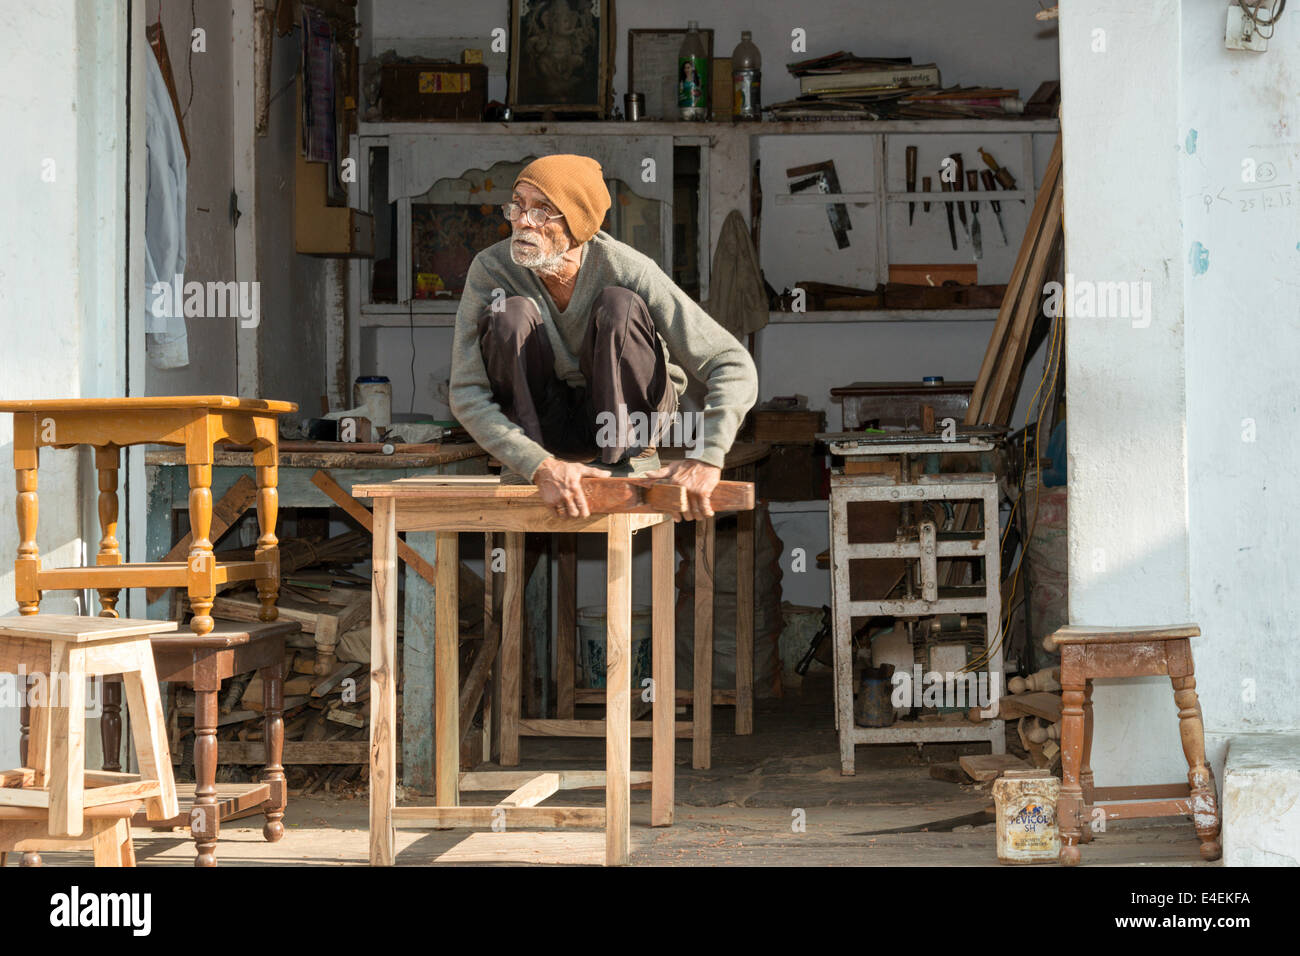 UDAIPUR, INDIA - JANUARY 2014: A carpenter working on furniture in Udaiper 3rd of January 2014. - Stock Image